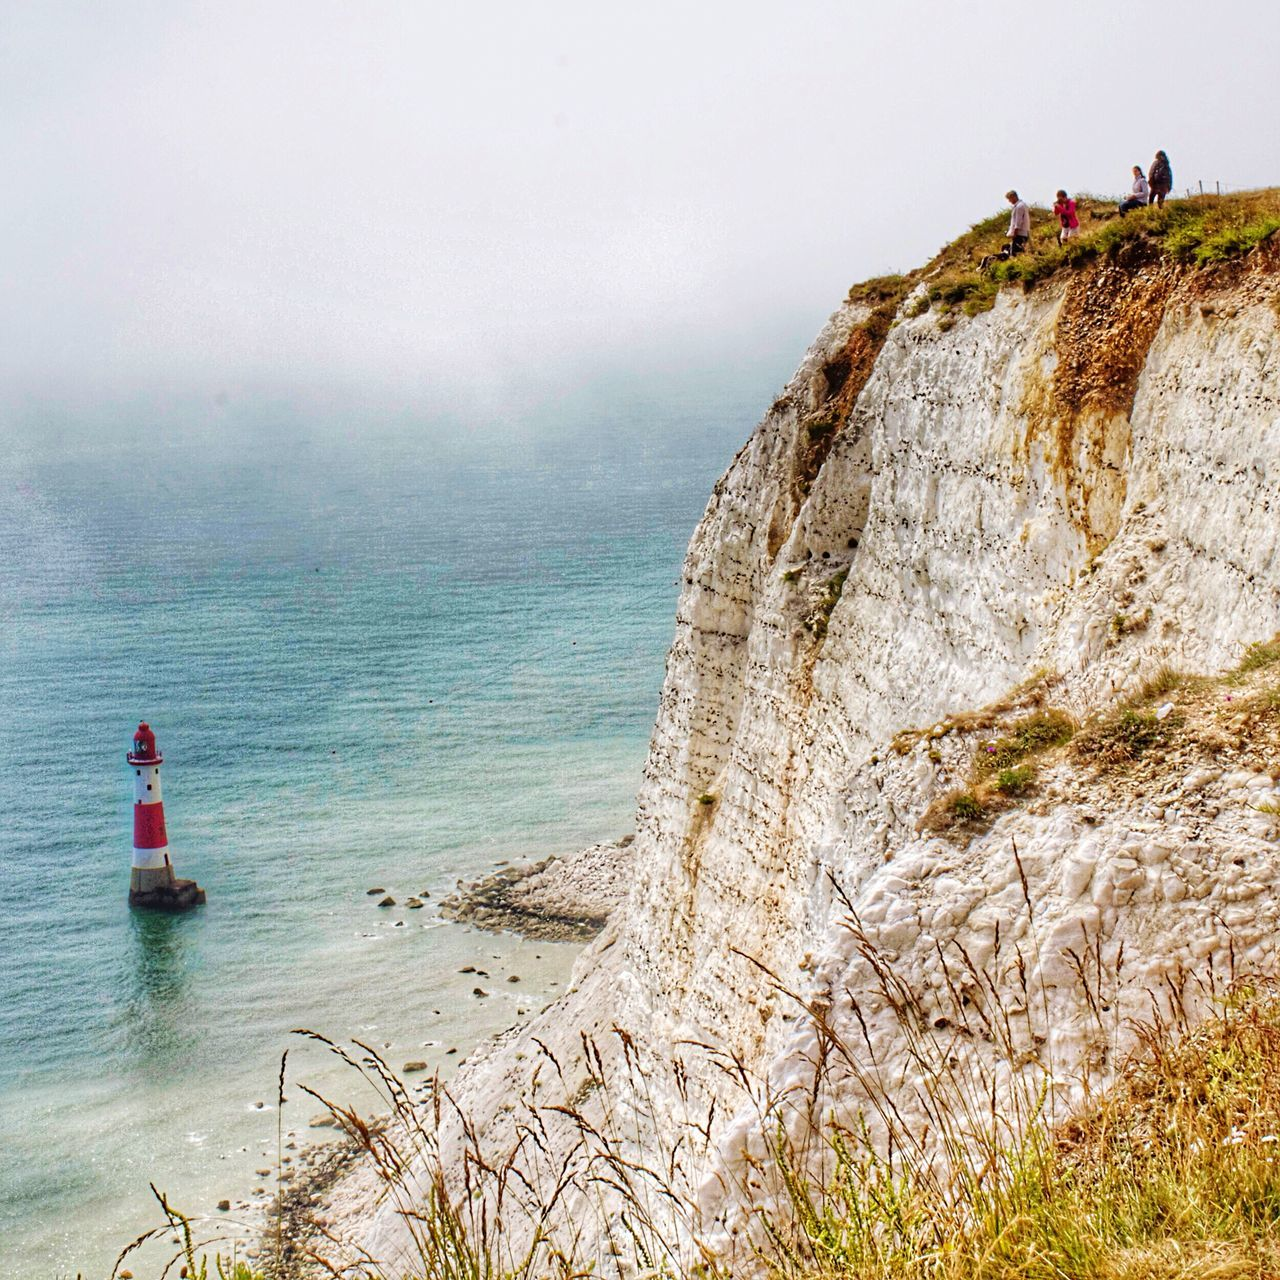 Beachy Head Cliff Eastbourne England United Kingdom Lighthouse Lighthouse_lovers Ocean Ocean View Sea Fog Danger Showcase: January The Tourist Landscapes With WhiteWall Landscape Landscape_Collection The Great Outdoors With Adobe The Great Outdoors - 2016 EyeEm Awards Original Experiences Miles Away